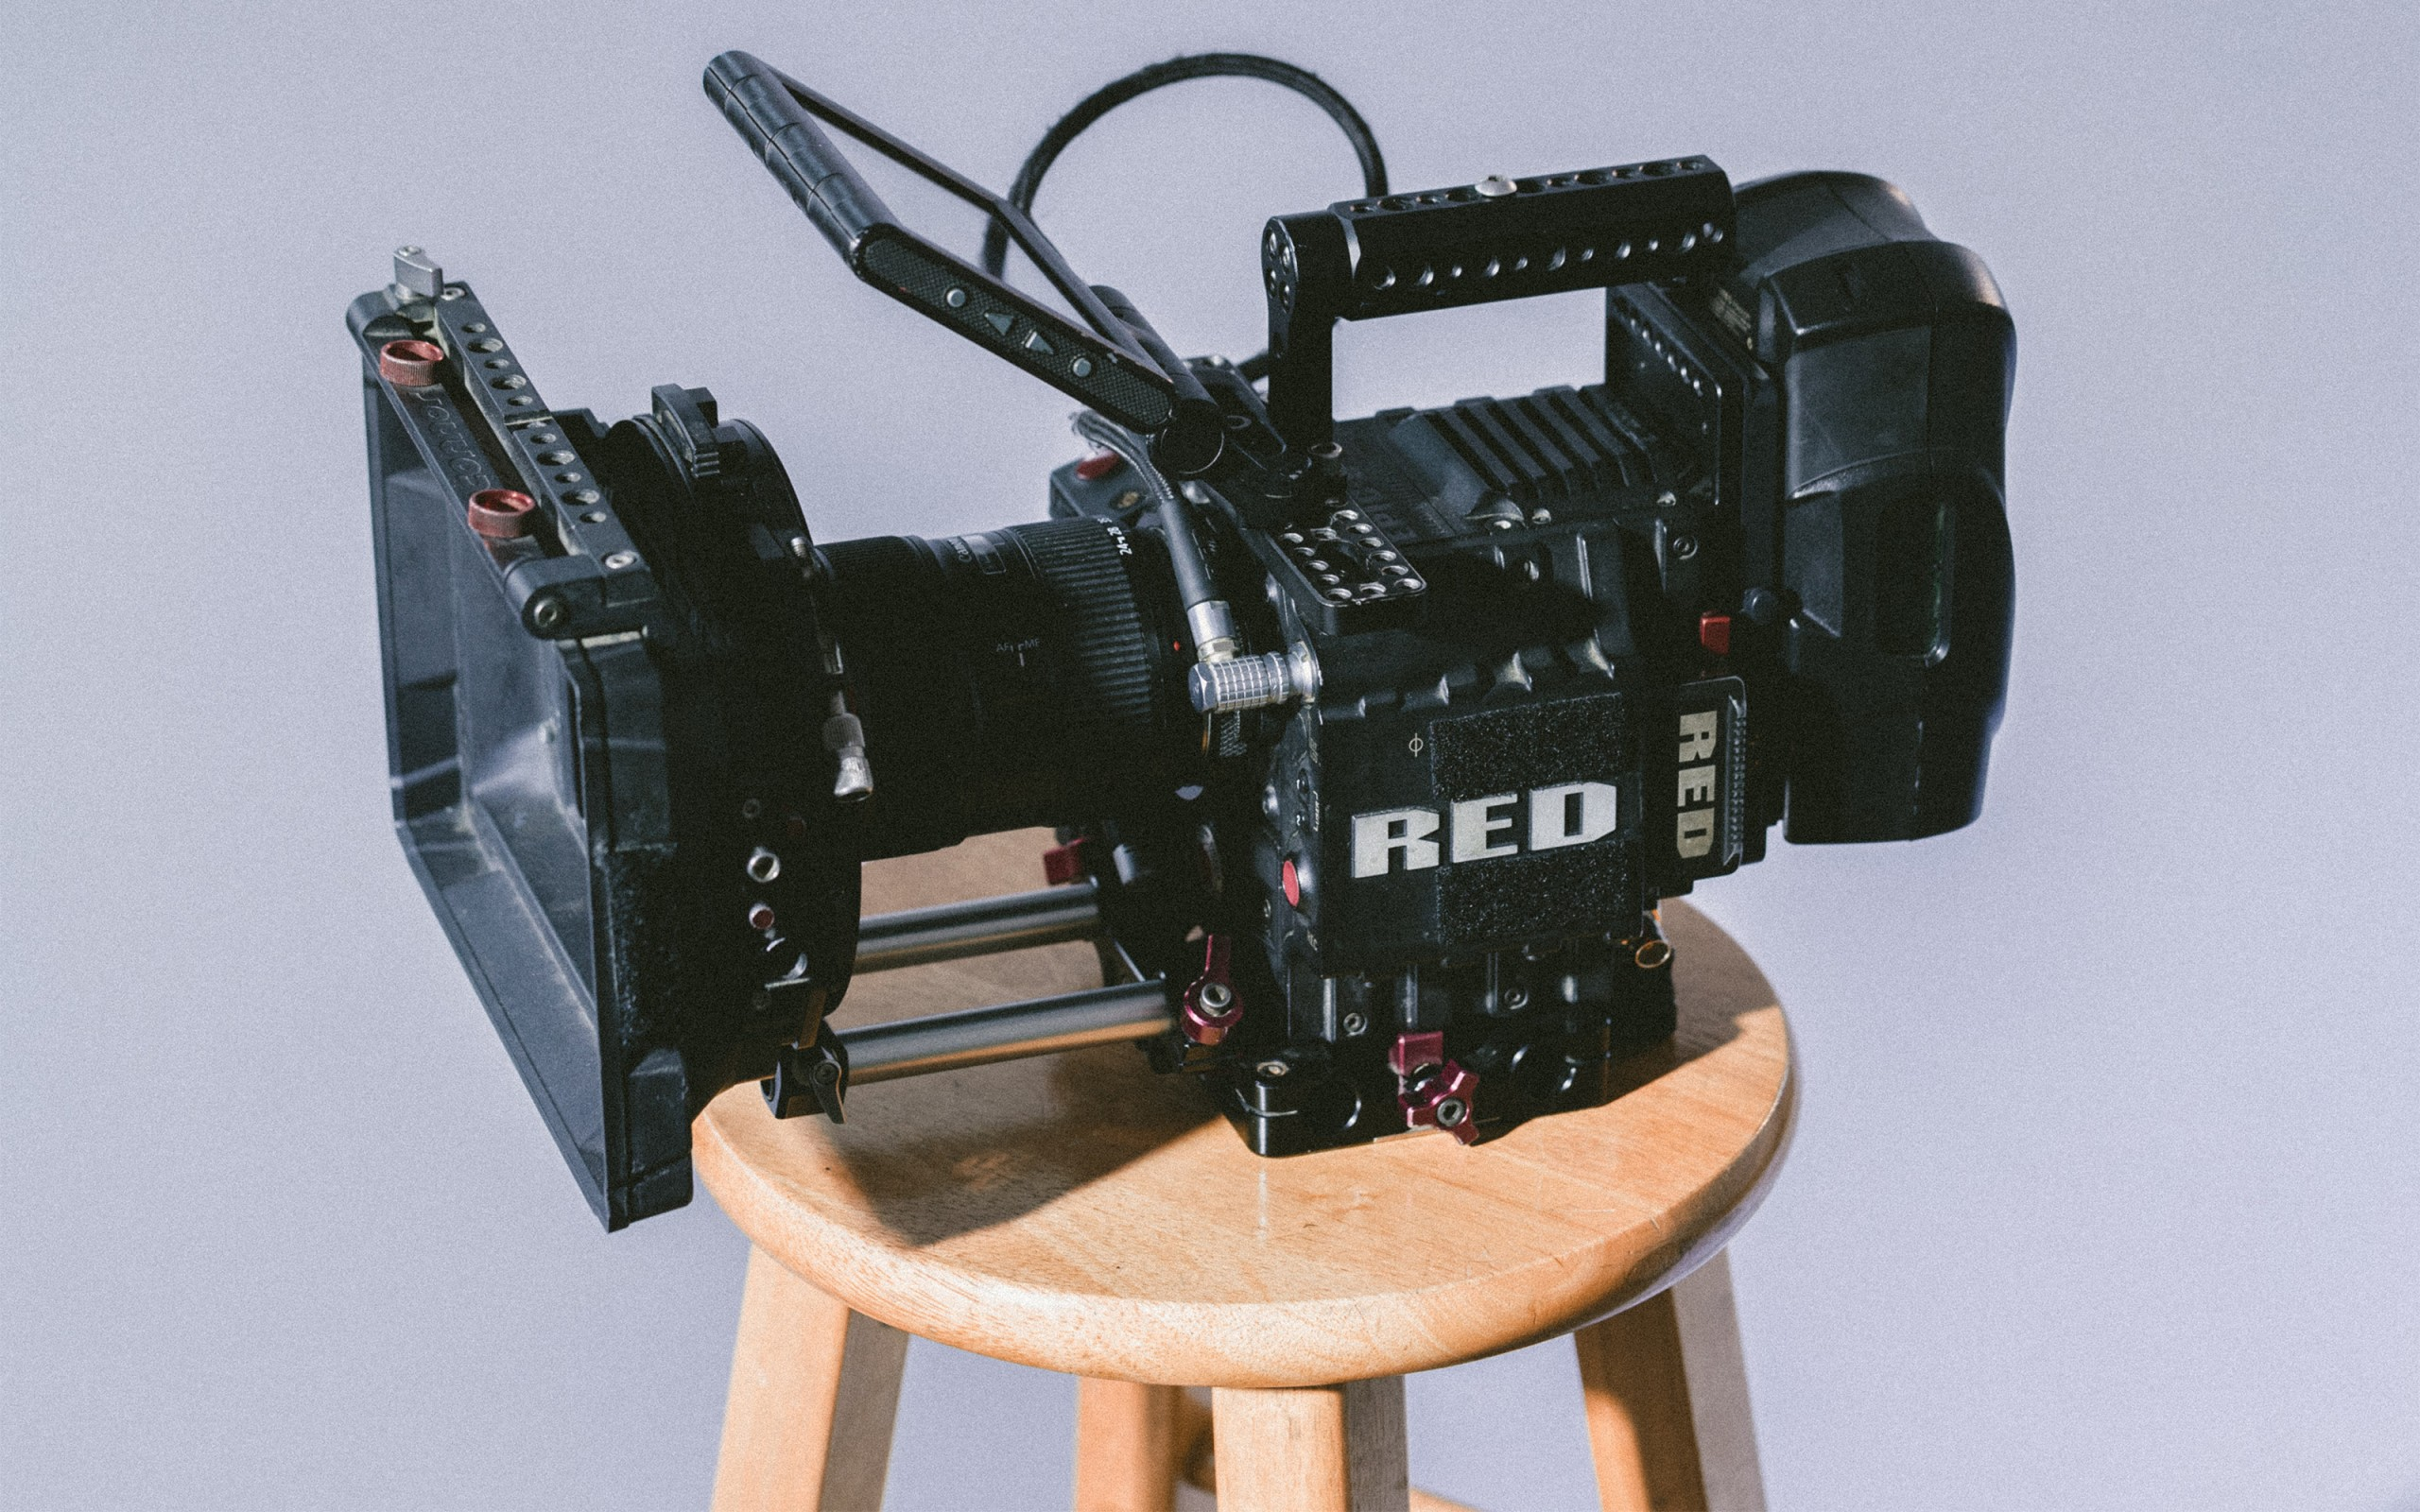 Video camera sitting on a wooden stool